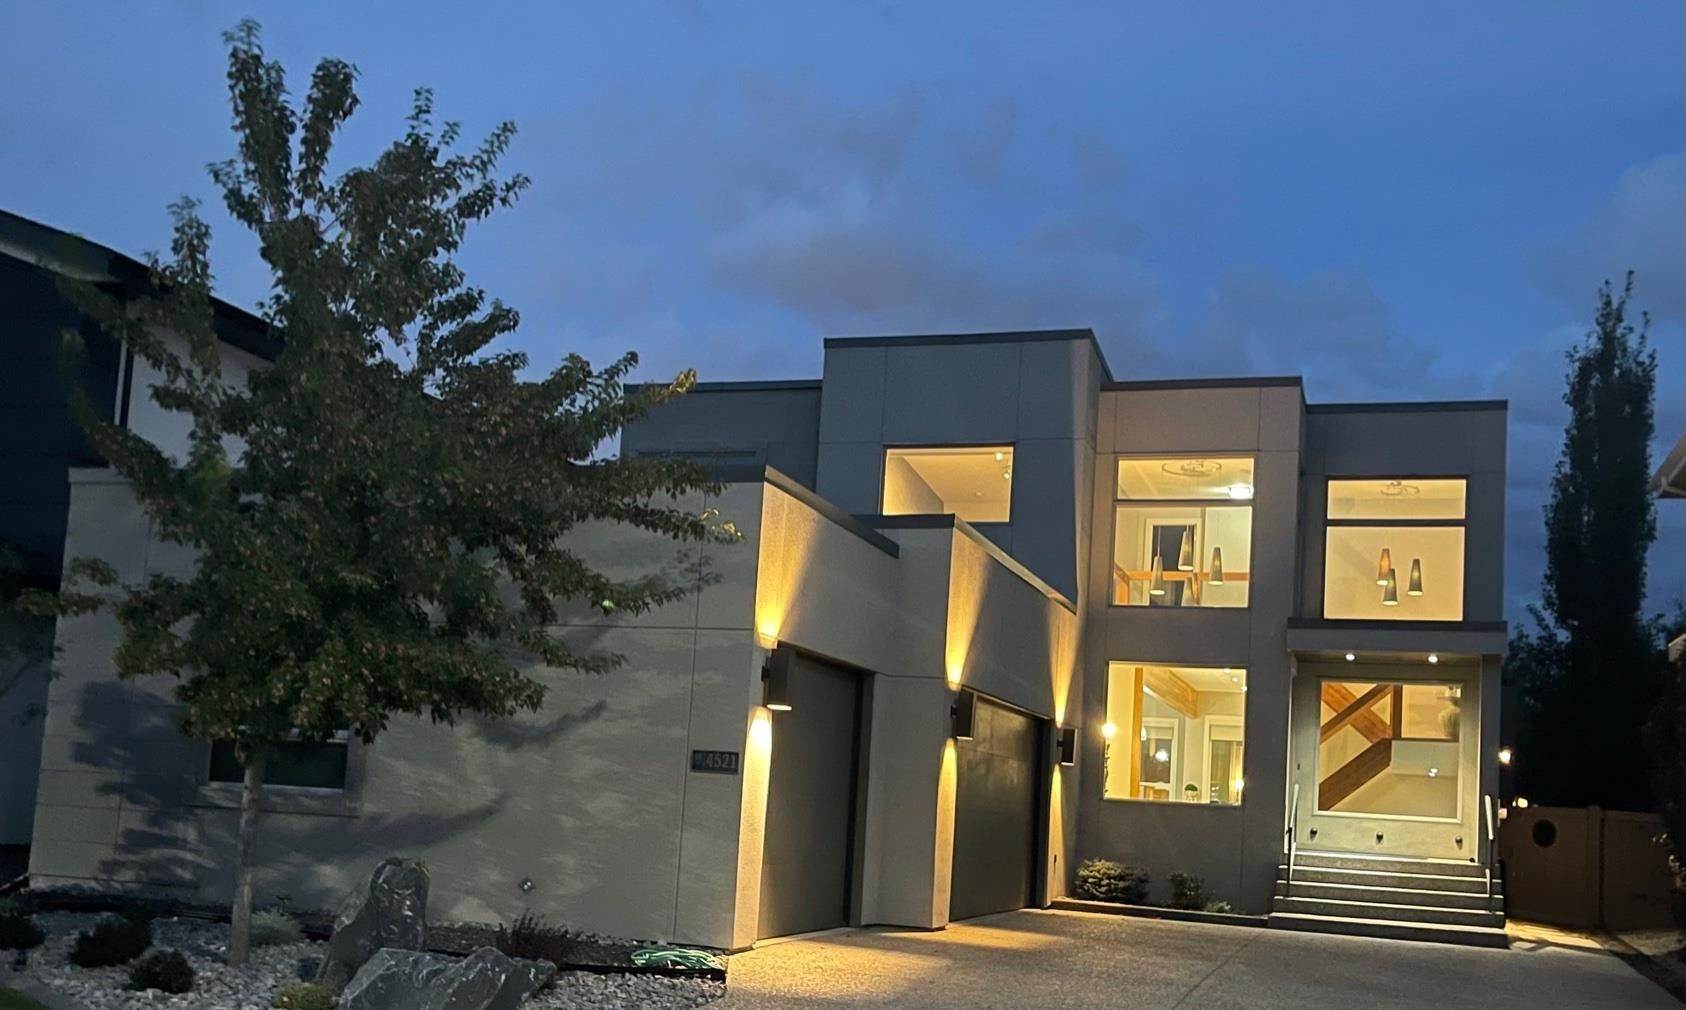 Main Photo: 4521 Mead Court in Edmonton: Zone 14 House for sale : MLS®# E4260756